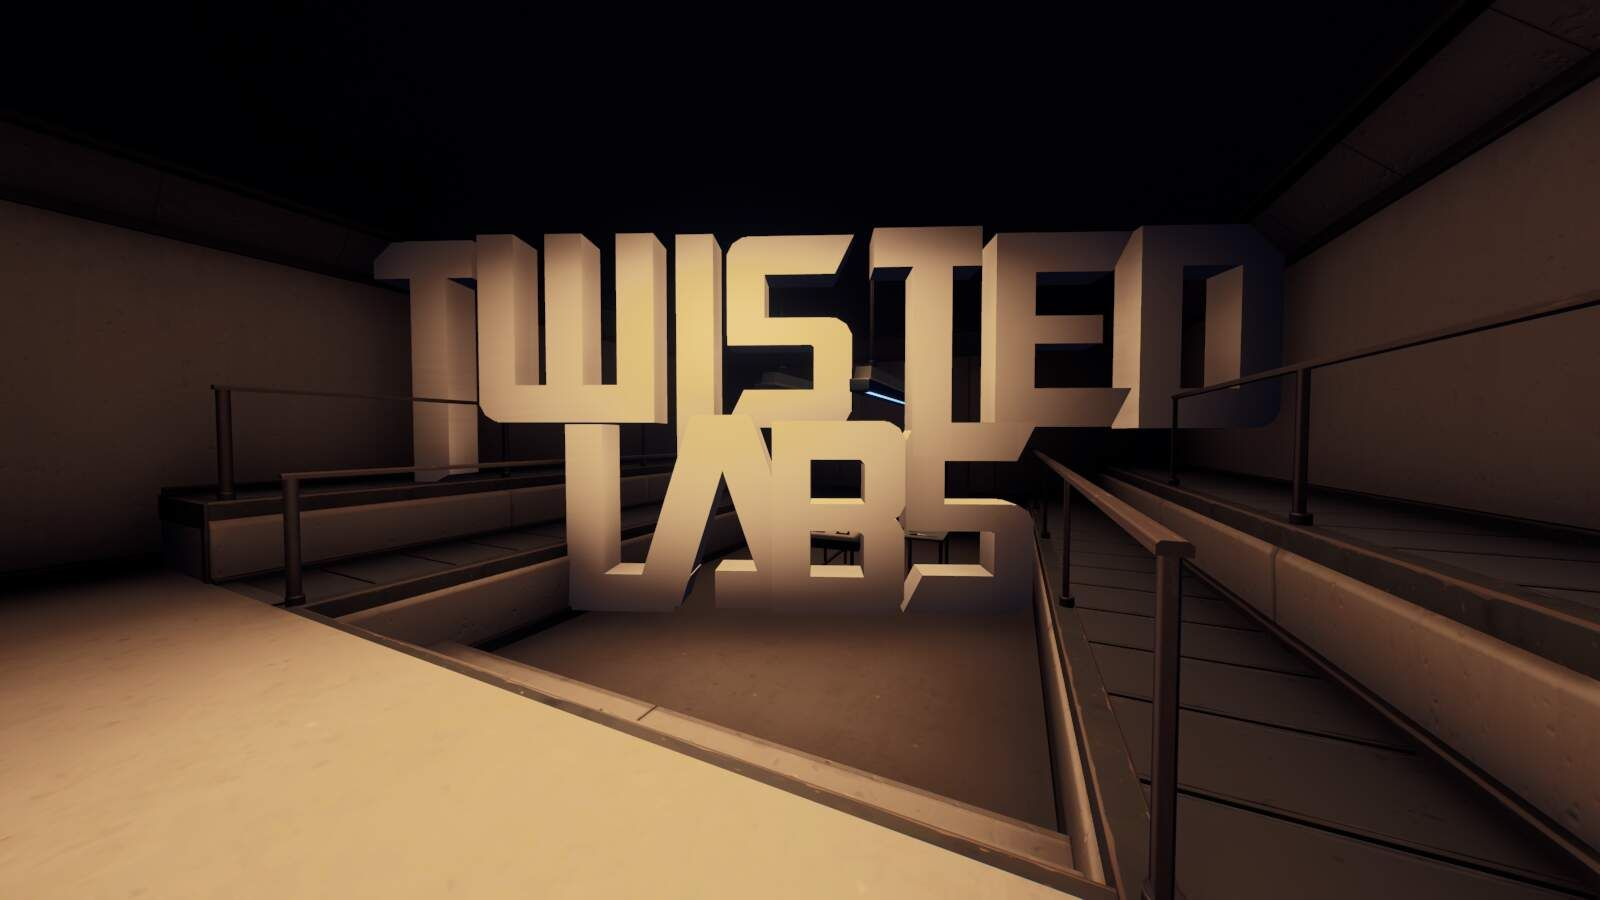 TWISTED LABS 3649-7560-5154 by playmoroli_yt